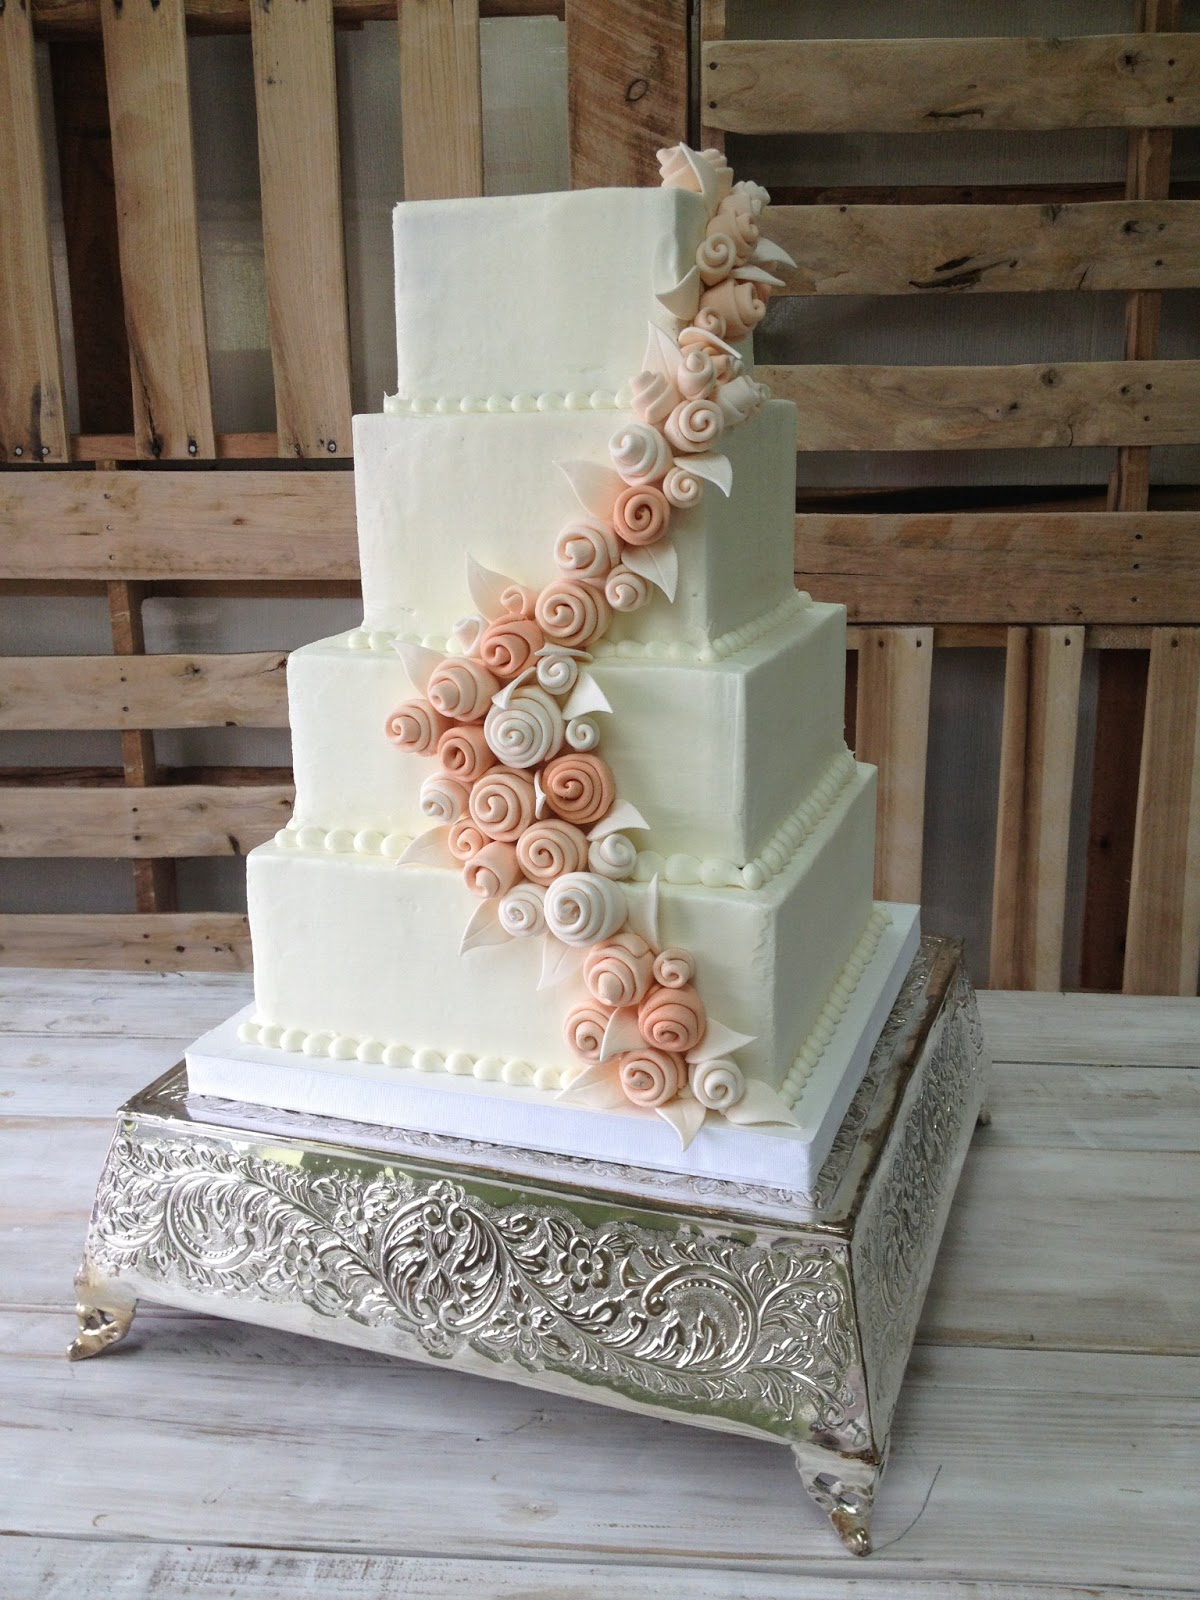 Lindseys Wedding Cake Was Frosted In Vanilla Buttercream And Featured A Winding Cascade Of Whimsical Sugar Roses